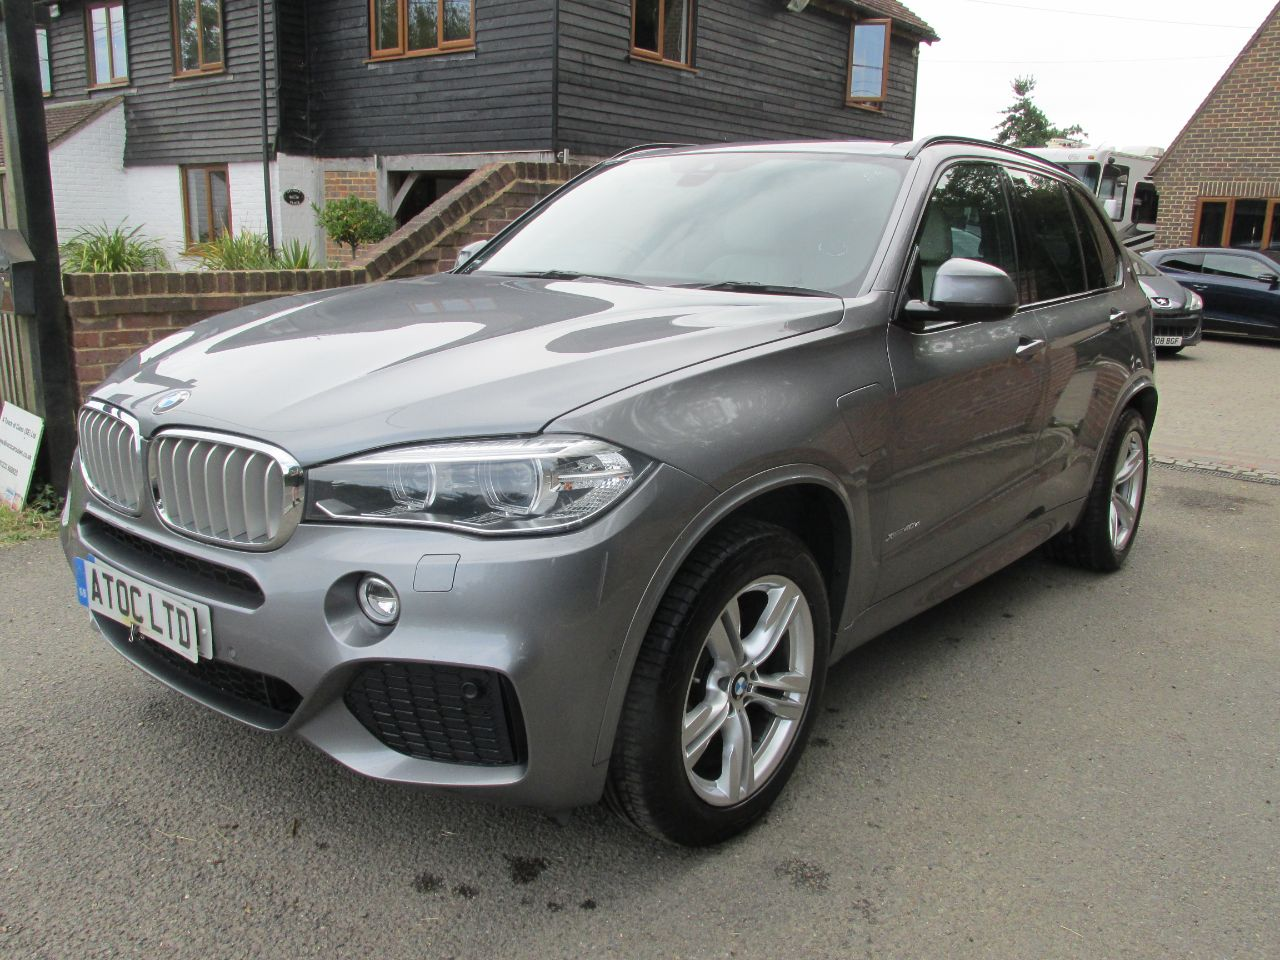 2016 BMW X5 2.0 xDrive40e M Sport 5dr Auto + Zero Road Tax Band + VAT Qualifying